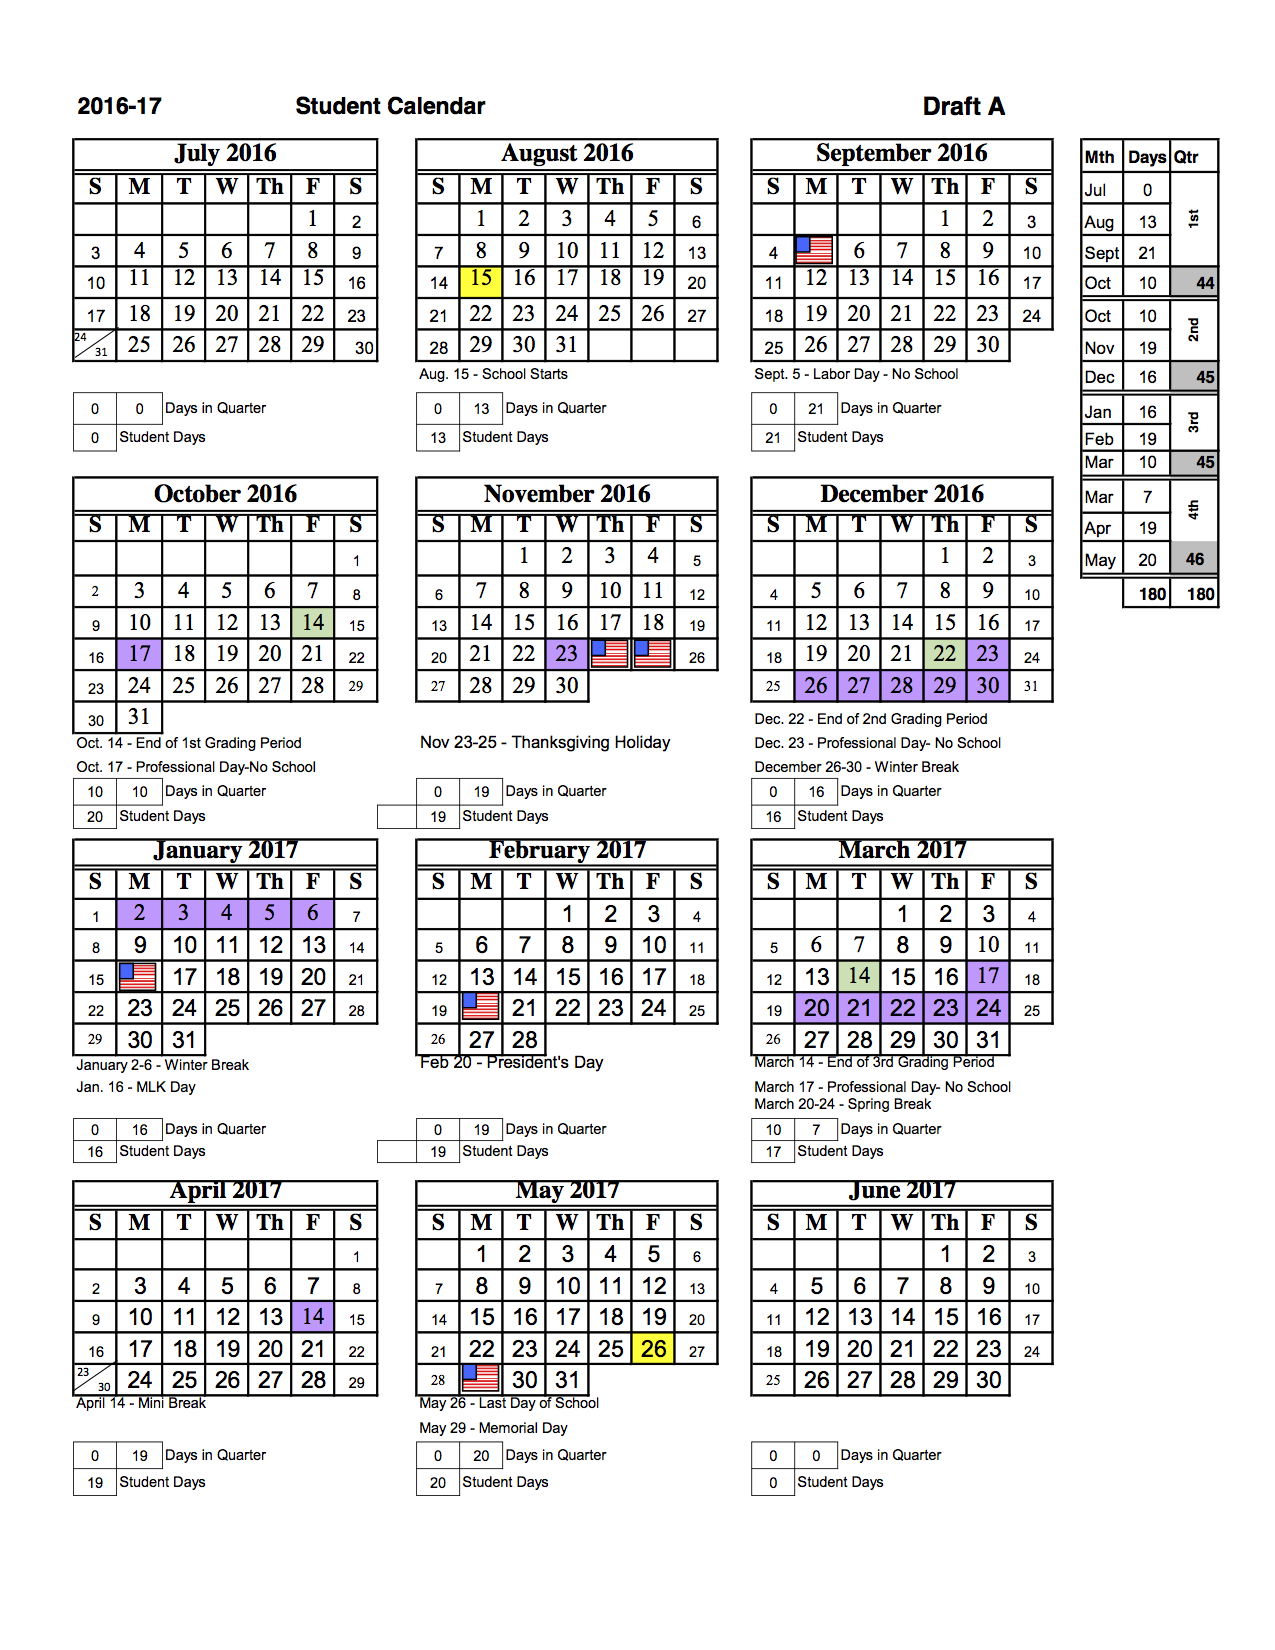 School Calendar | Coursework Sample March 2020 Within Corona Norco Usd School Calendar